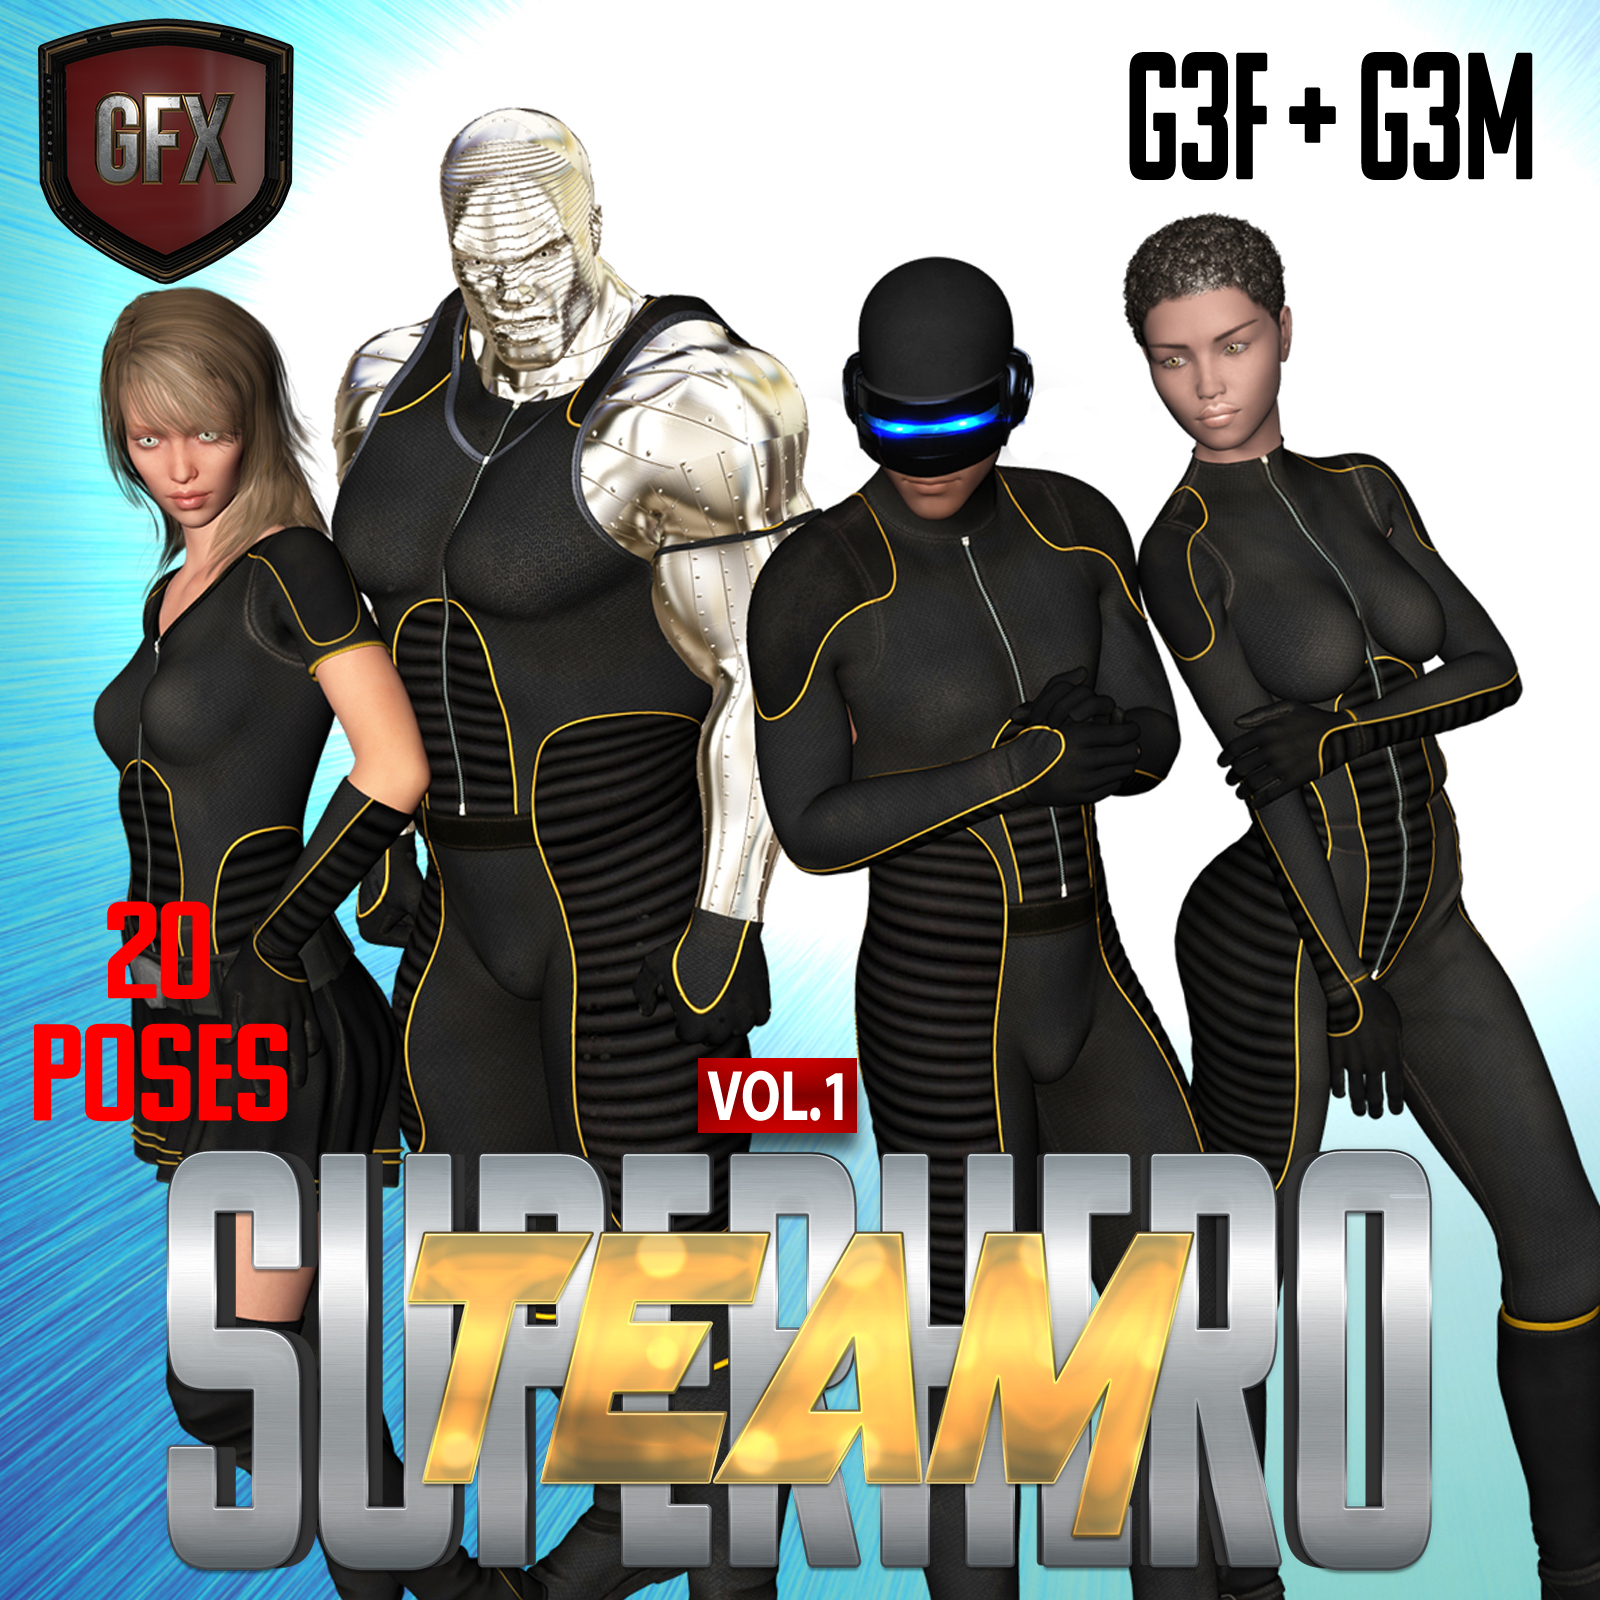 SuperHero Team for G3F & G3M Volume 1 by GriffinFX